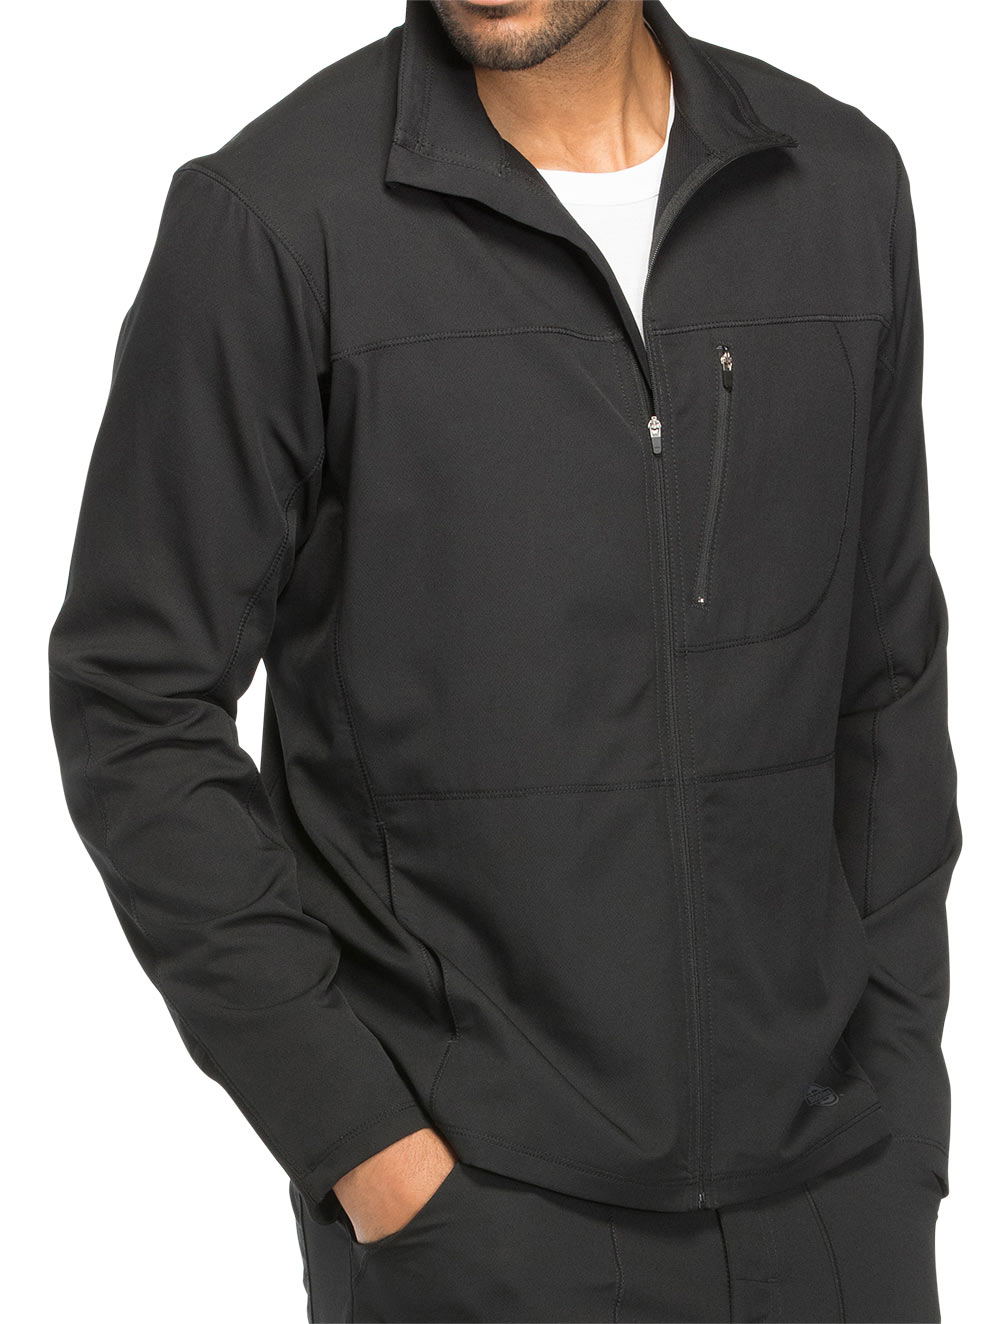 'Dynamix' Men's Zip Front Warm-Up Jacket